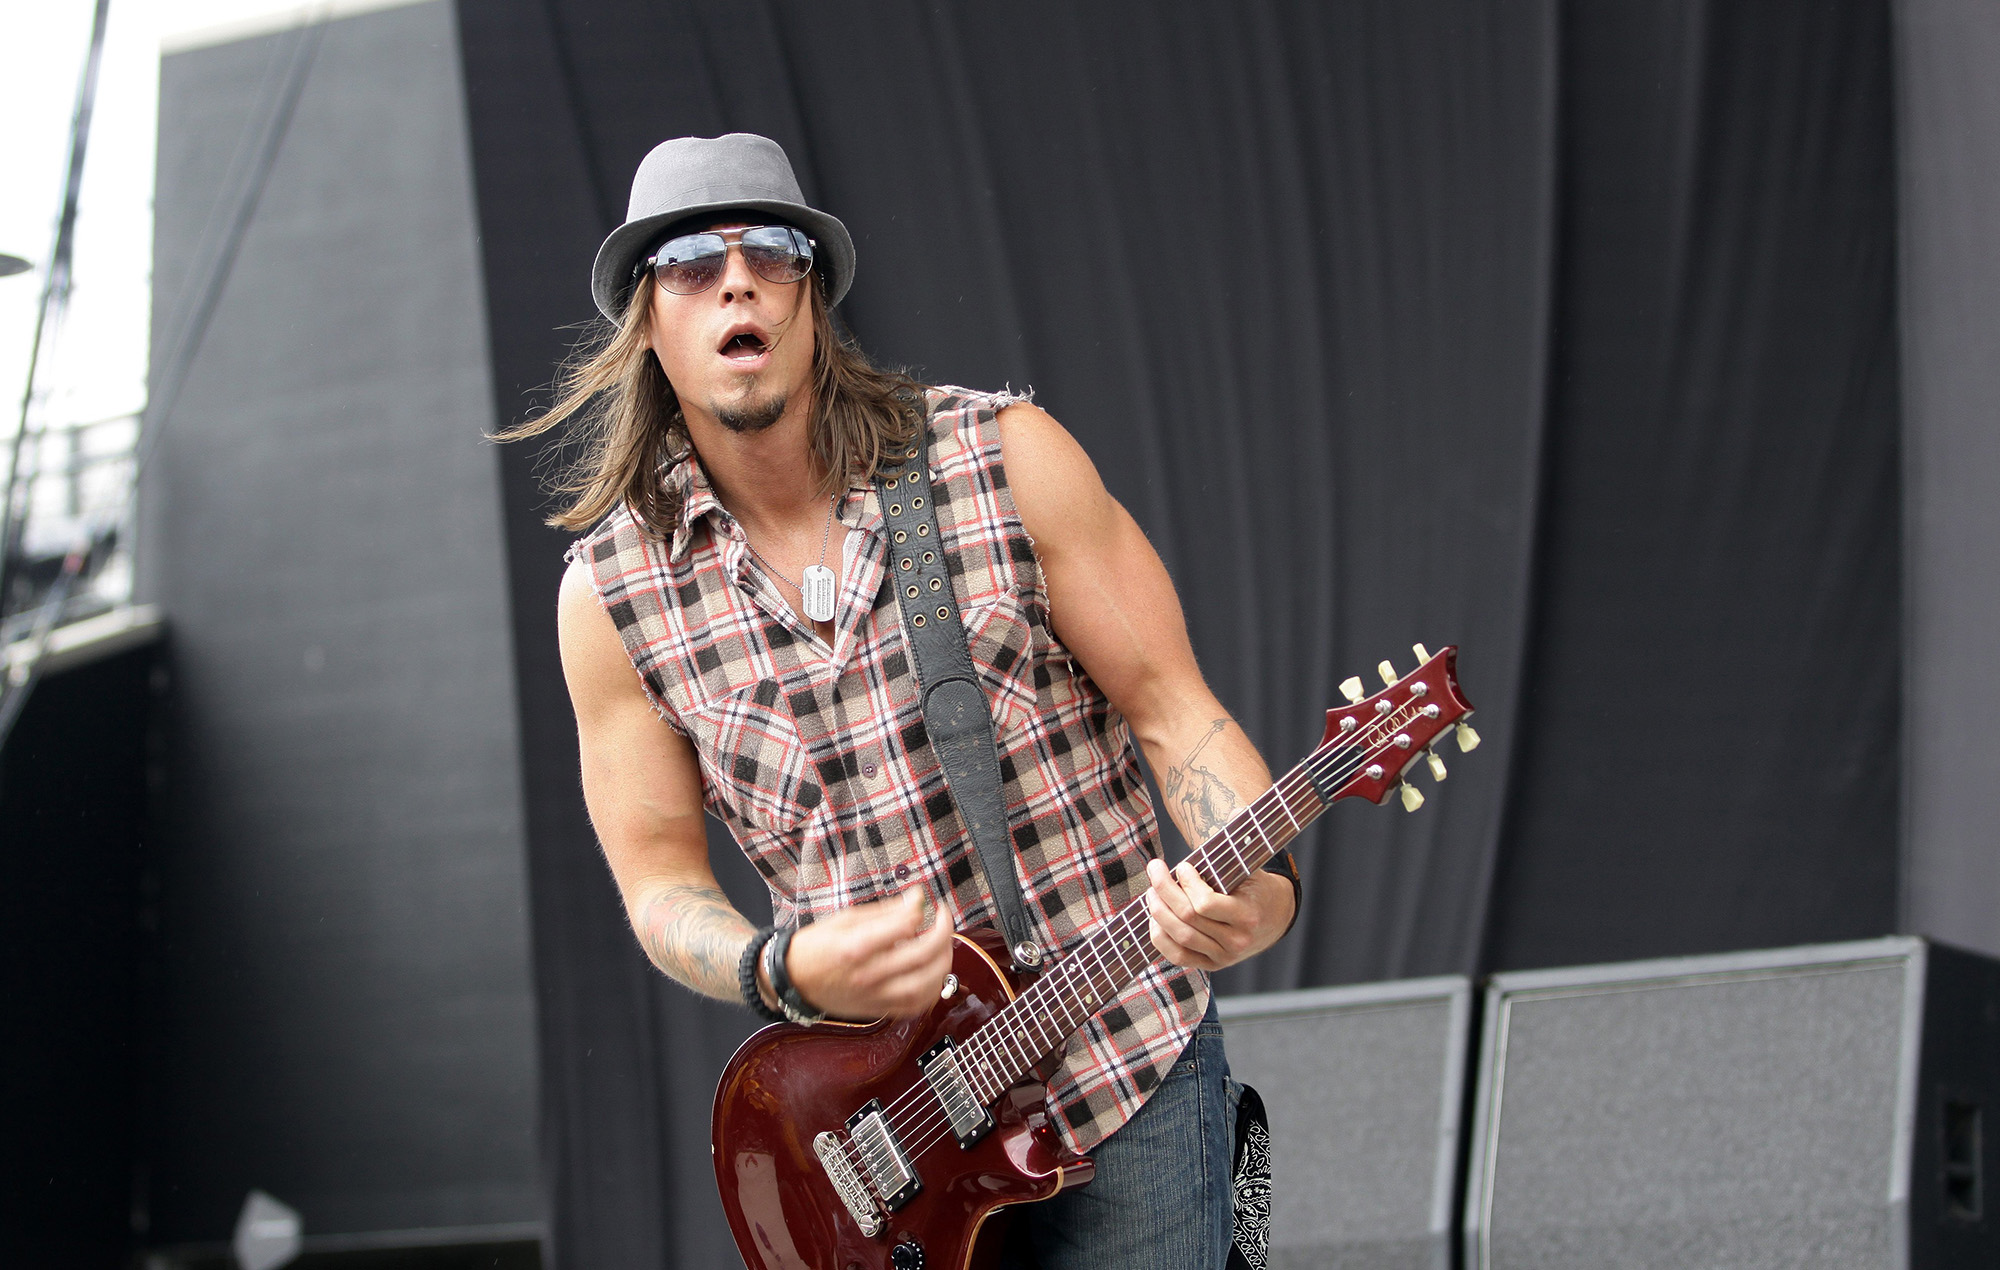 Paul Phillips of Puddle of Mudd in 2010